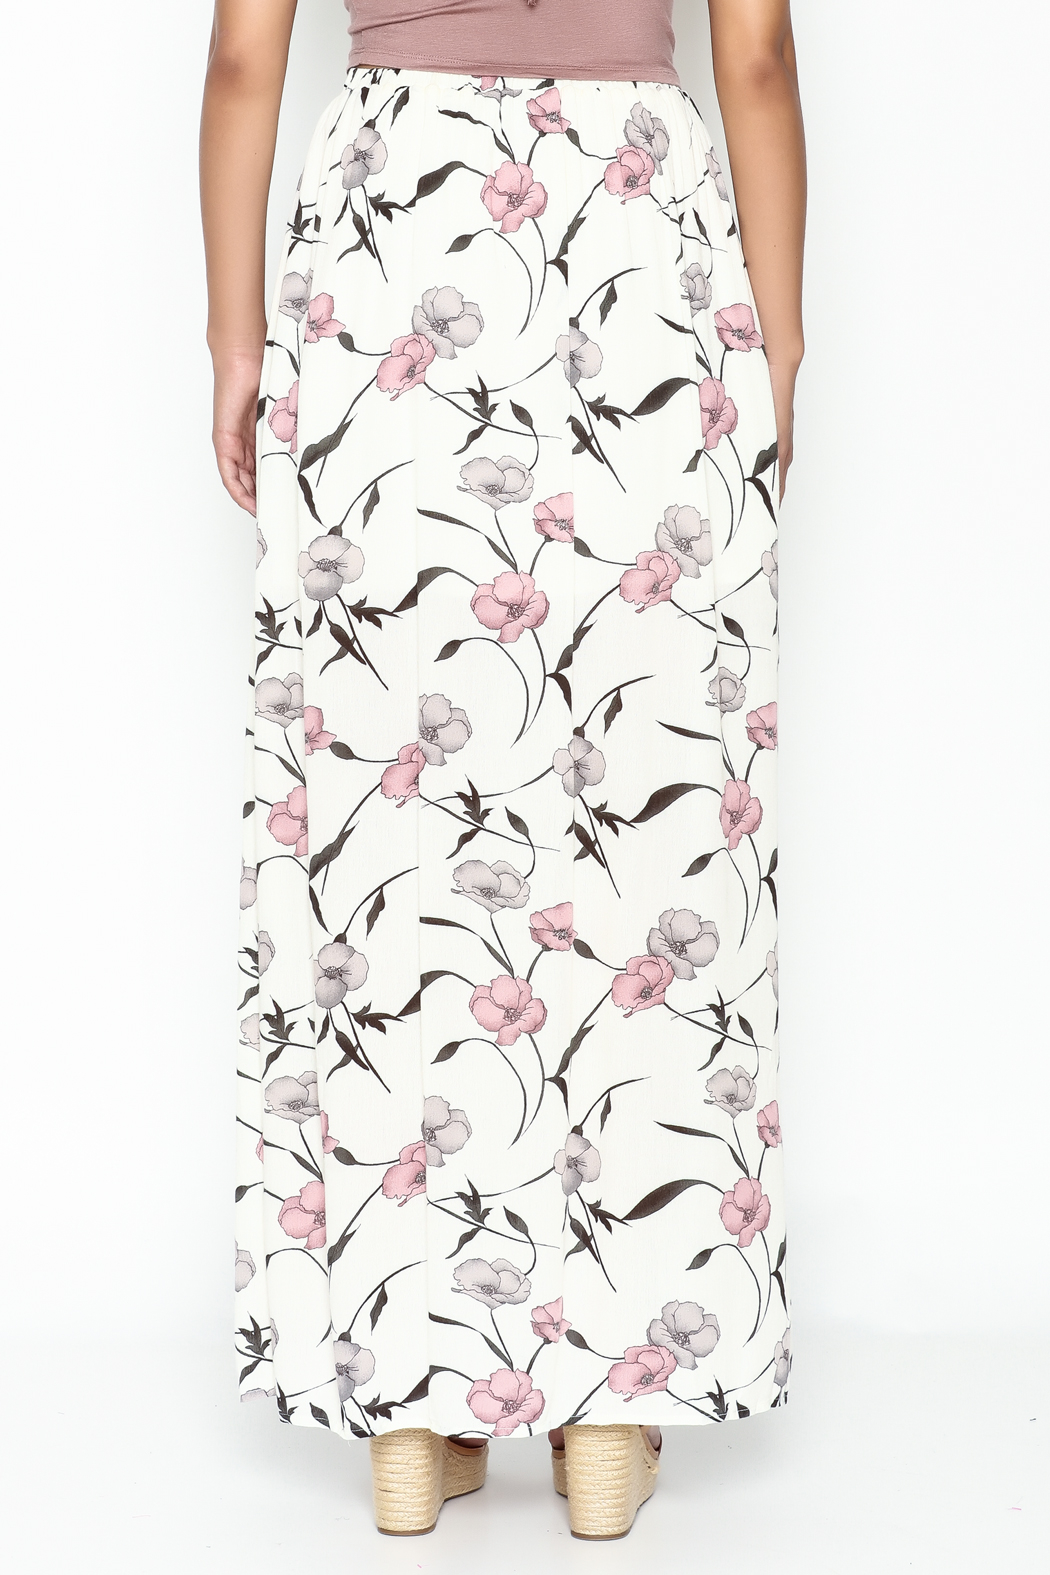 y&i clothing boutique Spaced Floral Maxi Skirt - Back Cropped Image